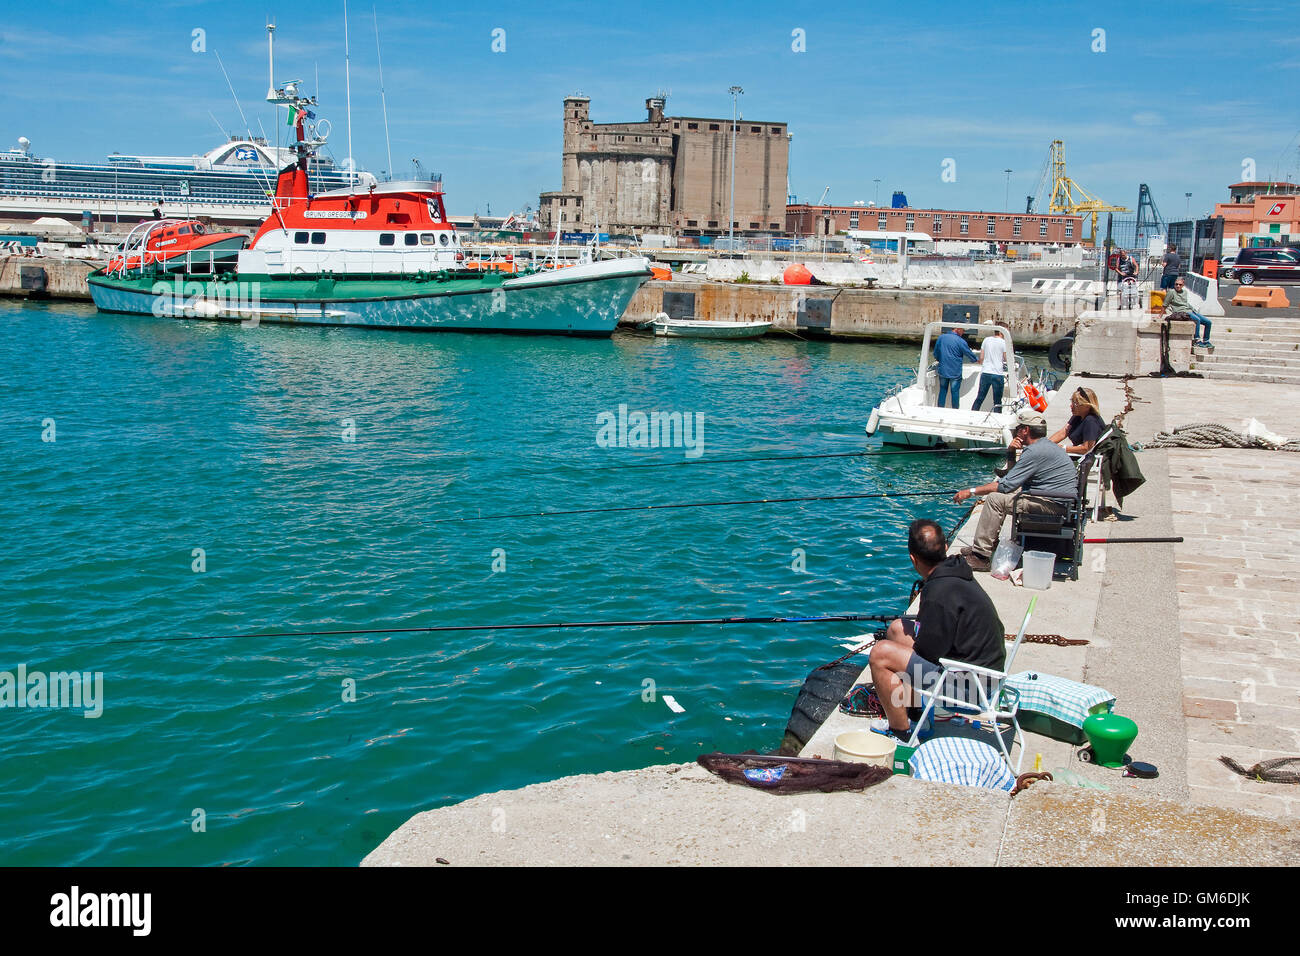 Fishing from the quayside at Livorno, Italy - Stock Image